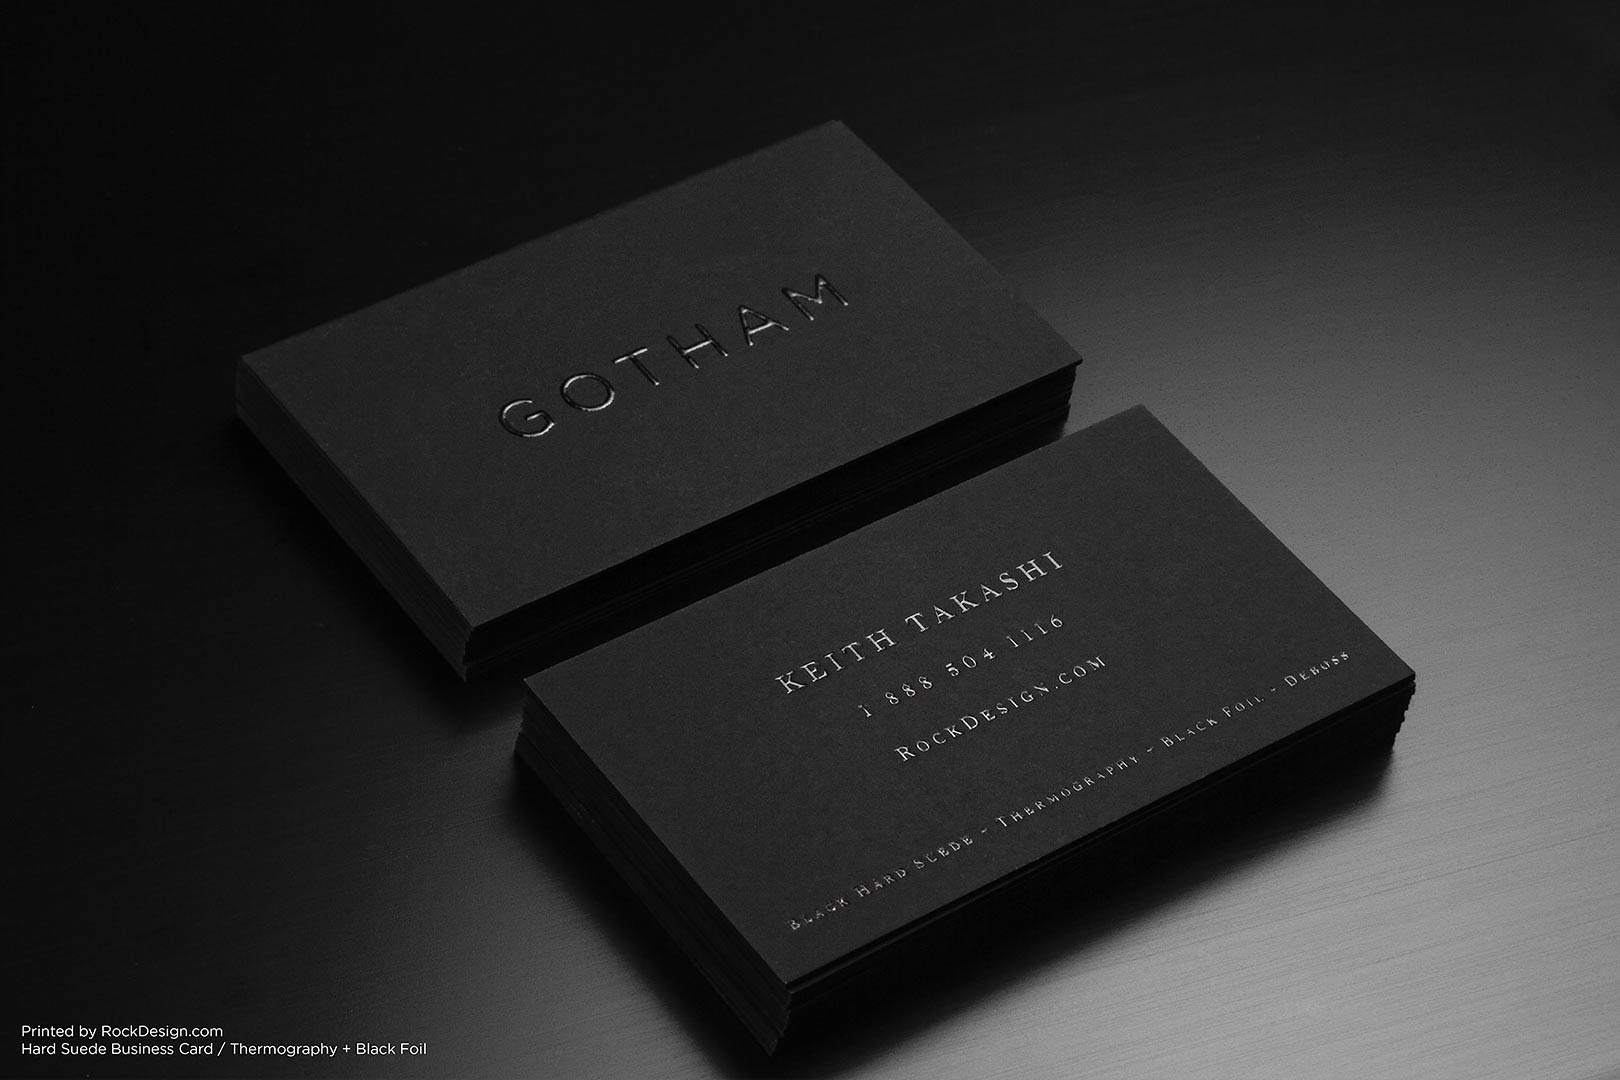 hard suede business cards 5